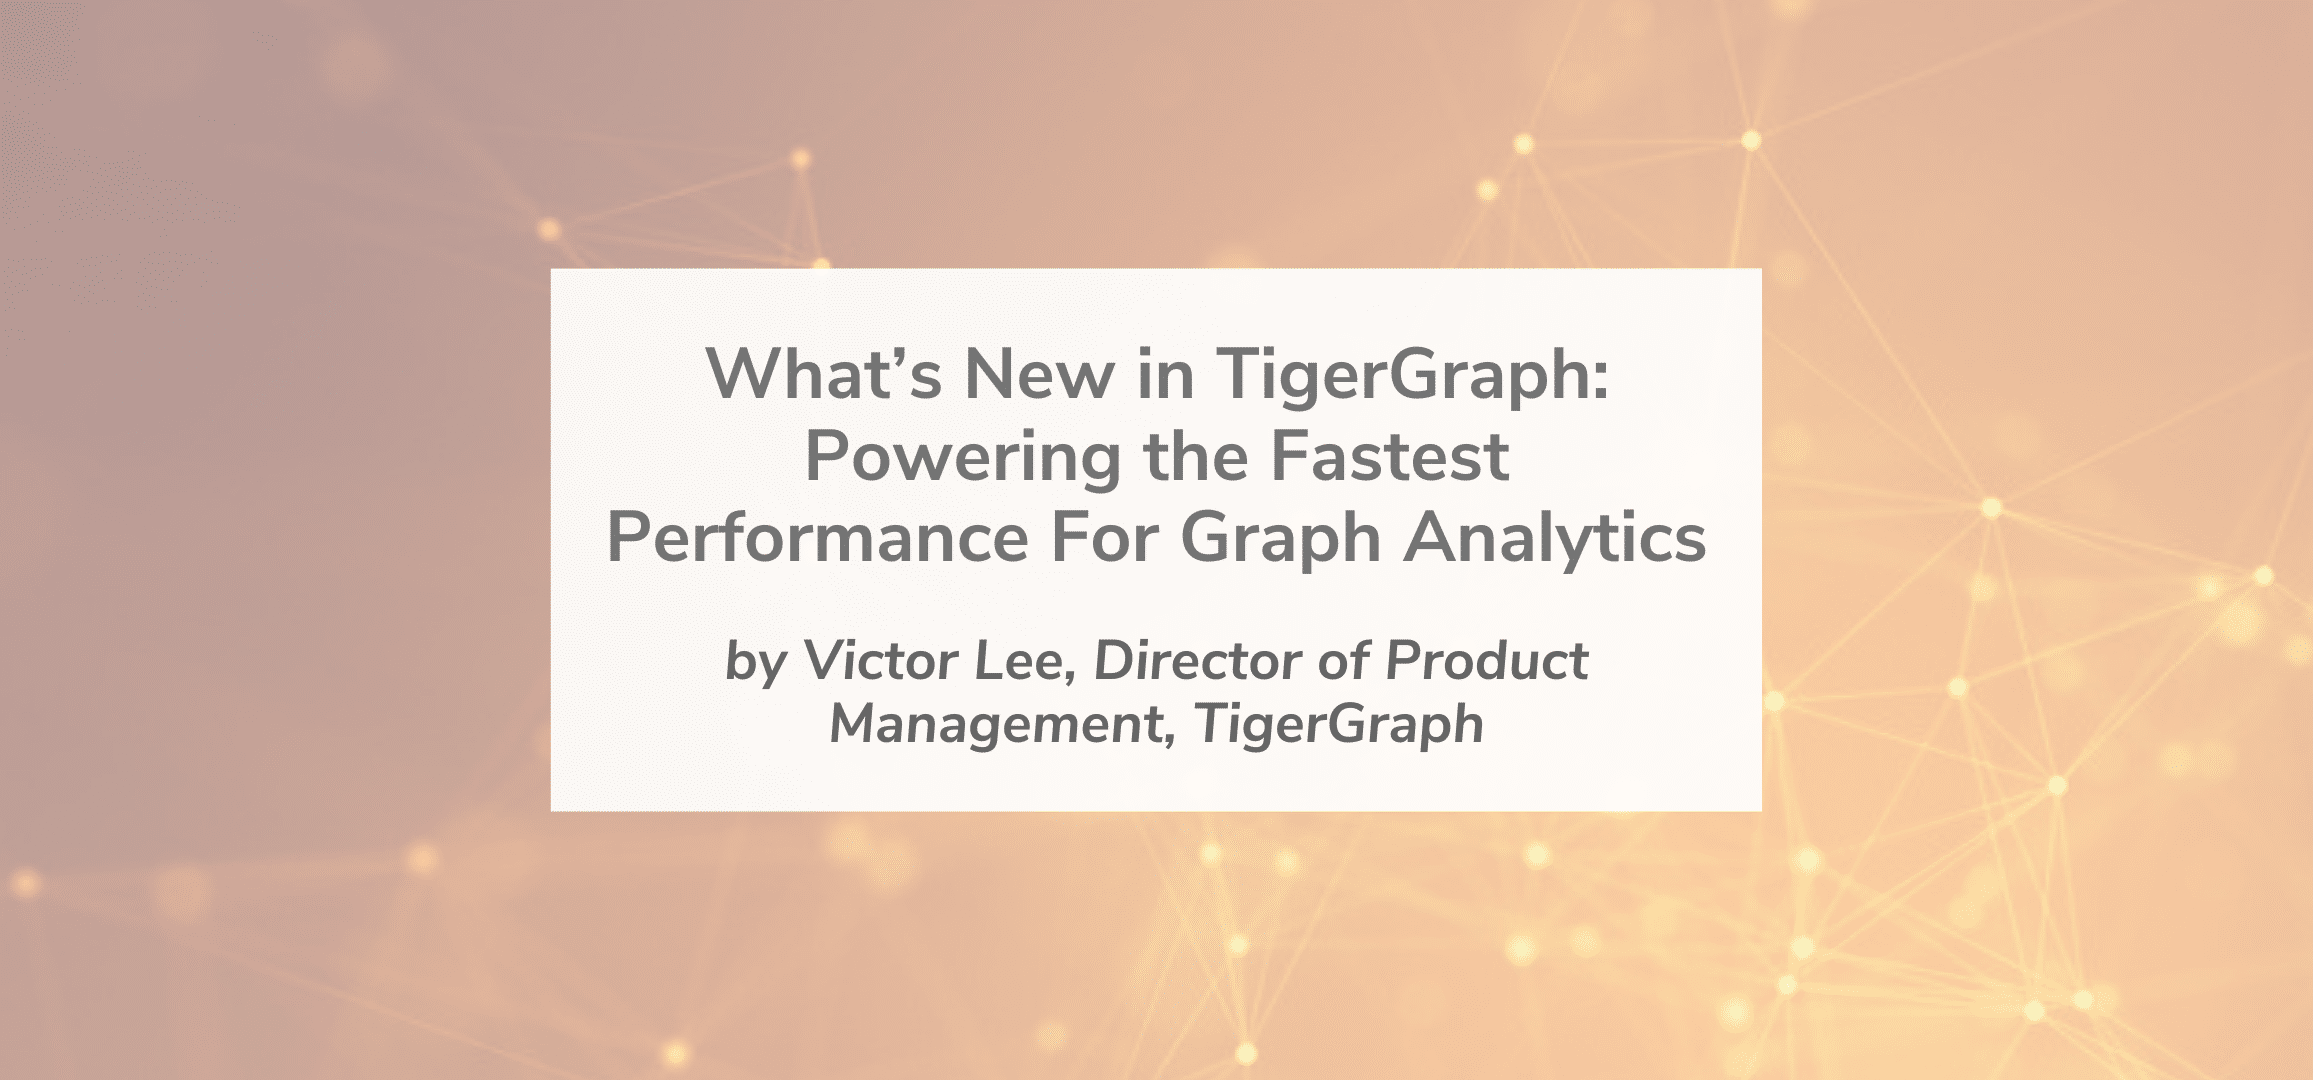 What's New in TigerGraph: Powering the Fastest Performance For Graph Analytics